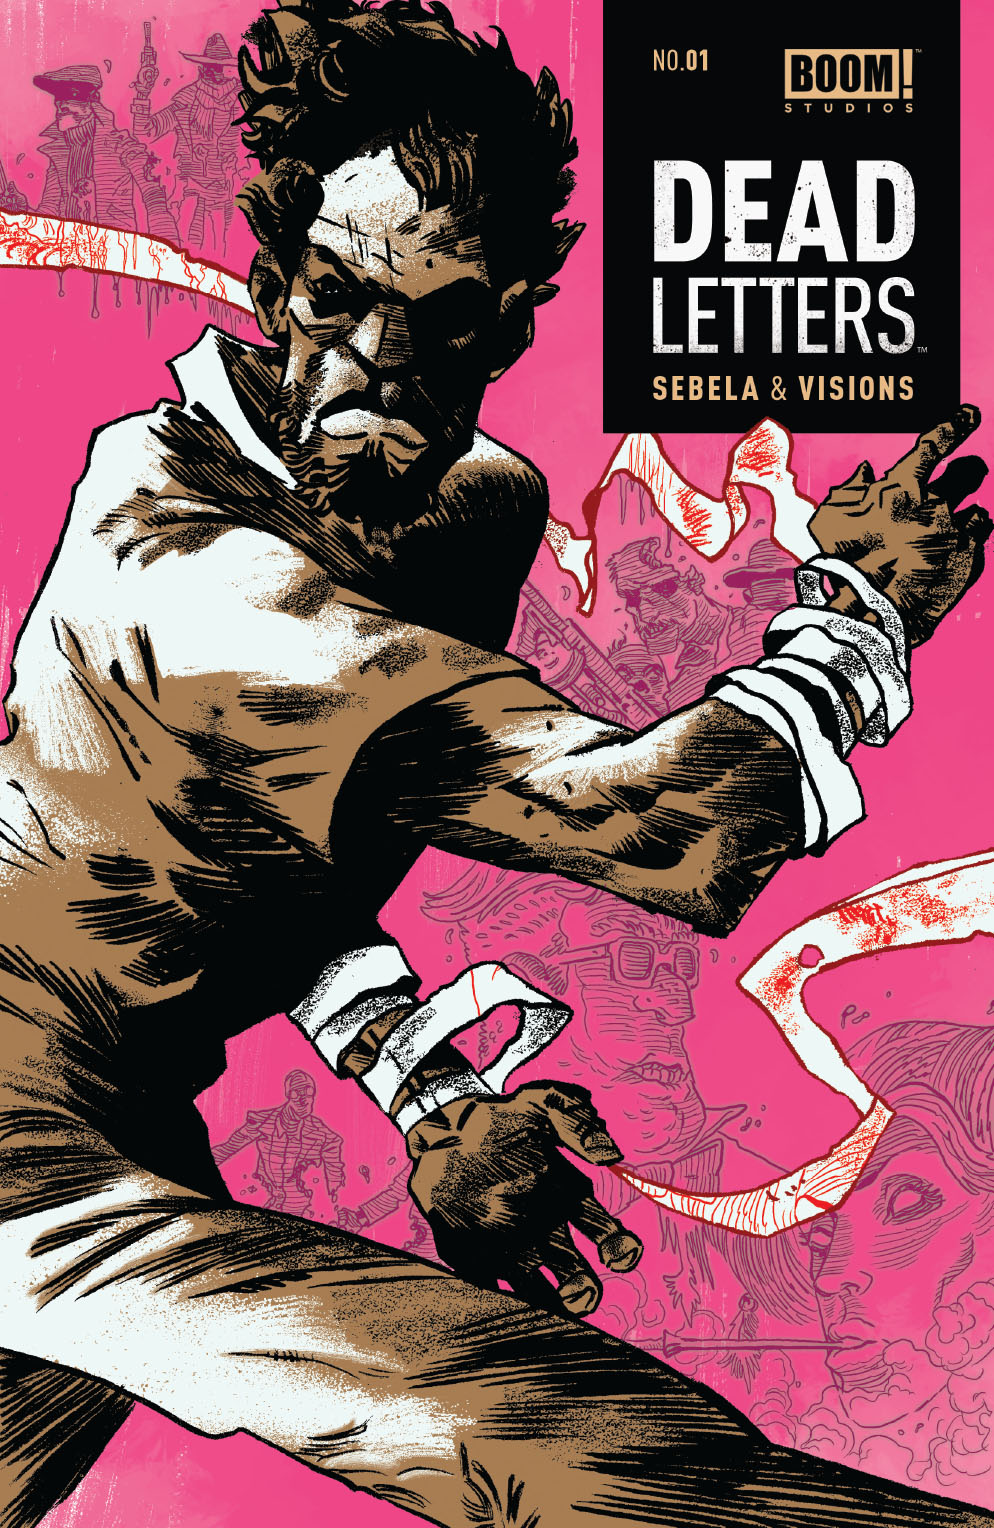 deadletterscomic: WE SOLD OUT. Yesterday was an insane whirlwind of love from all corners of the internet and we'd be lying if we said we weren't completely overwhelmed and overjoyed by how many people are picking the book up and digging what we're doing here. On that note, Dead Letters #1 officially sold out yesterday afternoon from Diamond, meaning whatever copies are in stores now are the only copies left to go around. So we're going back to print with a brand new 2nd printing cover for #1, drawn by Artyom Trakhanov of Image's new hit book UNDERTOW. Order info should go up early next week, so if you missed out or you want to double dip with this beautiful new cover, we'll have all that for you as soon as we get it. Thanks seems like too small a word for what we're feeling today, and that's on you for picking us up and spreading the word and making DEAD LETTERS the little book that could. what is happening?